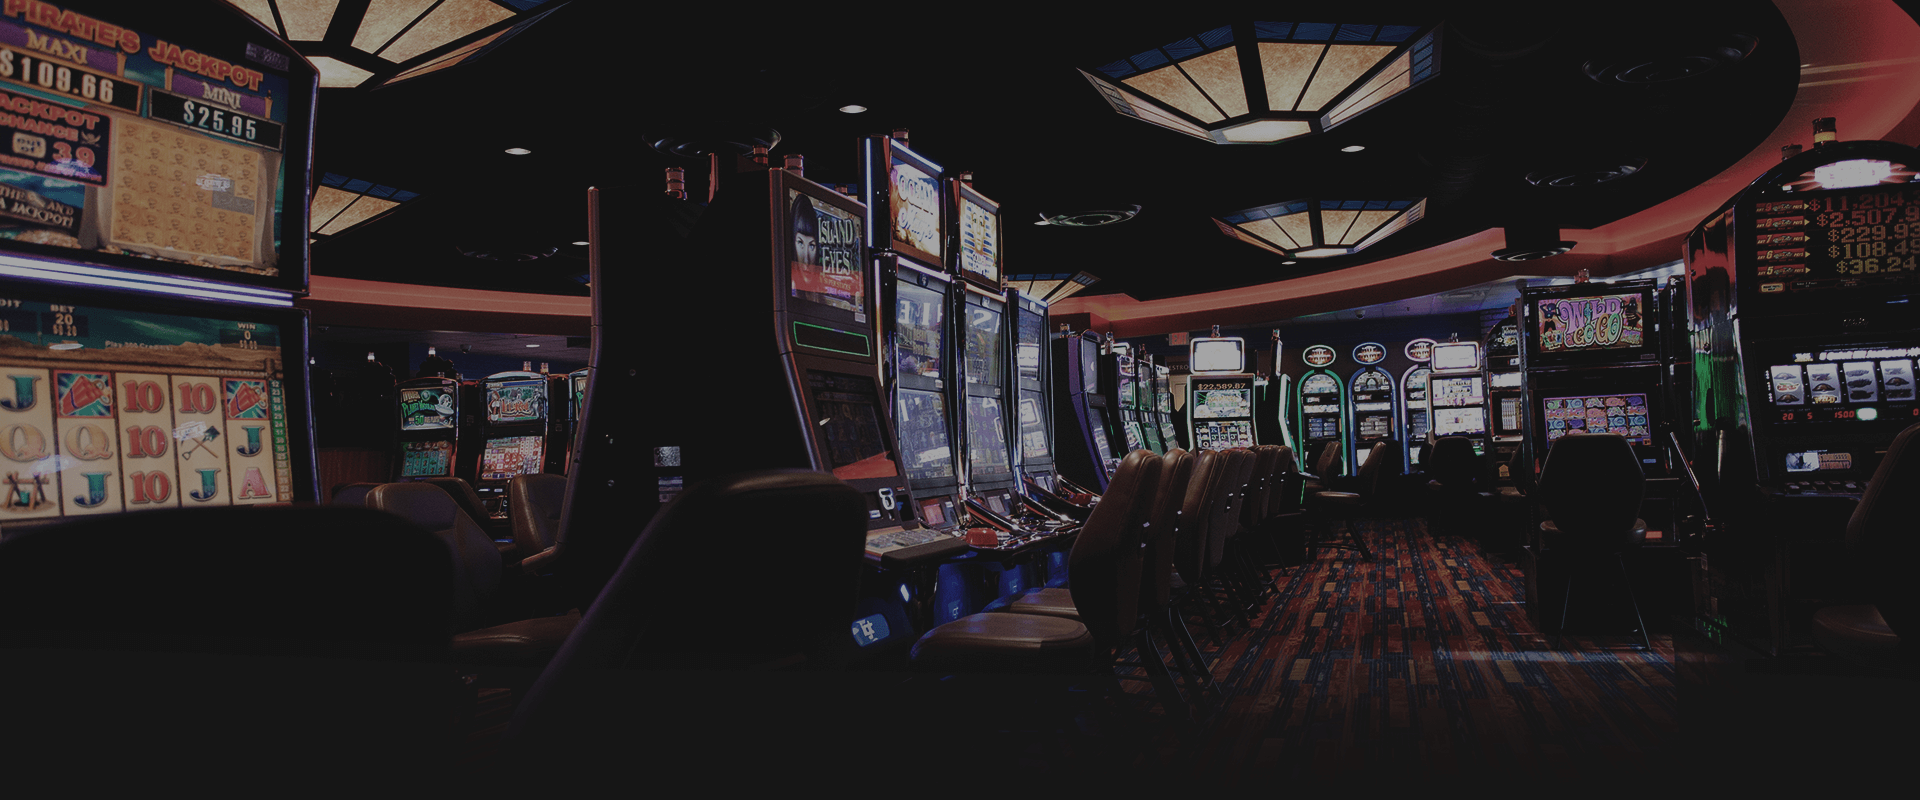 Route 66 casino players club